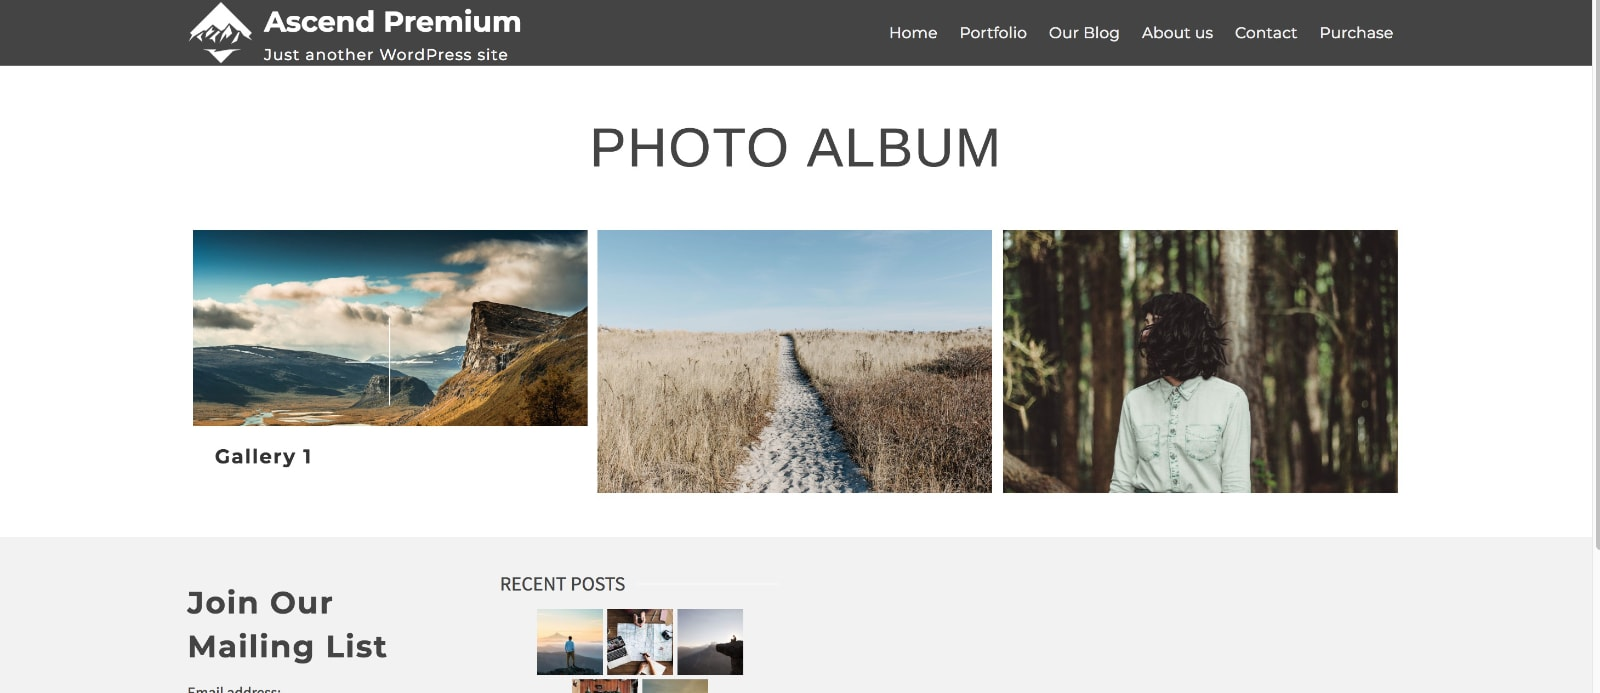 gallery-album-on-page-kadence-themes-galleries